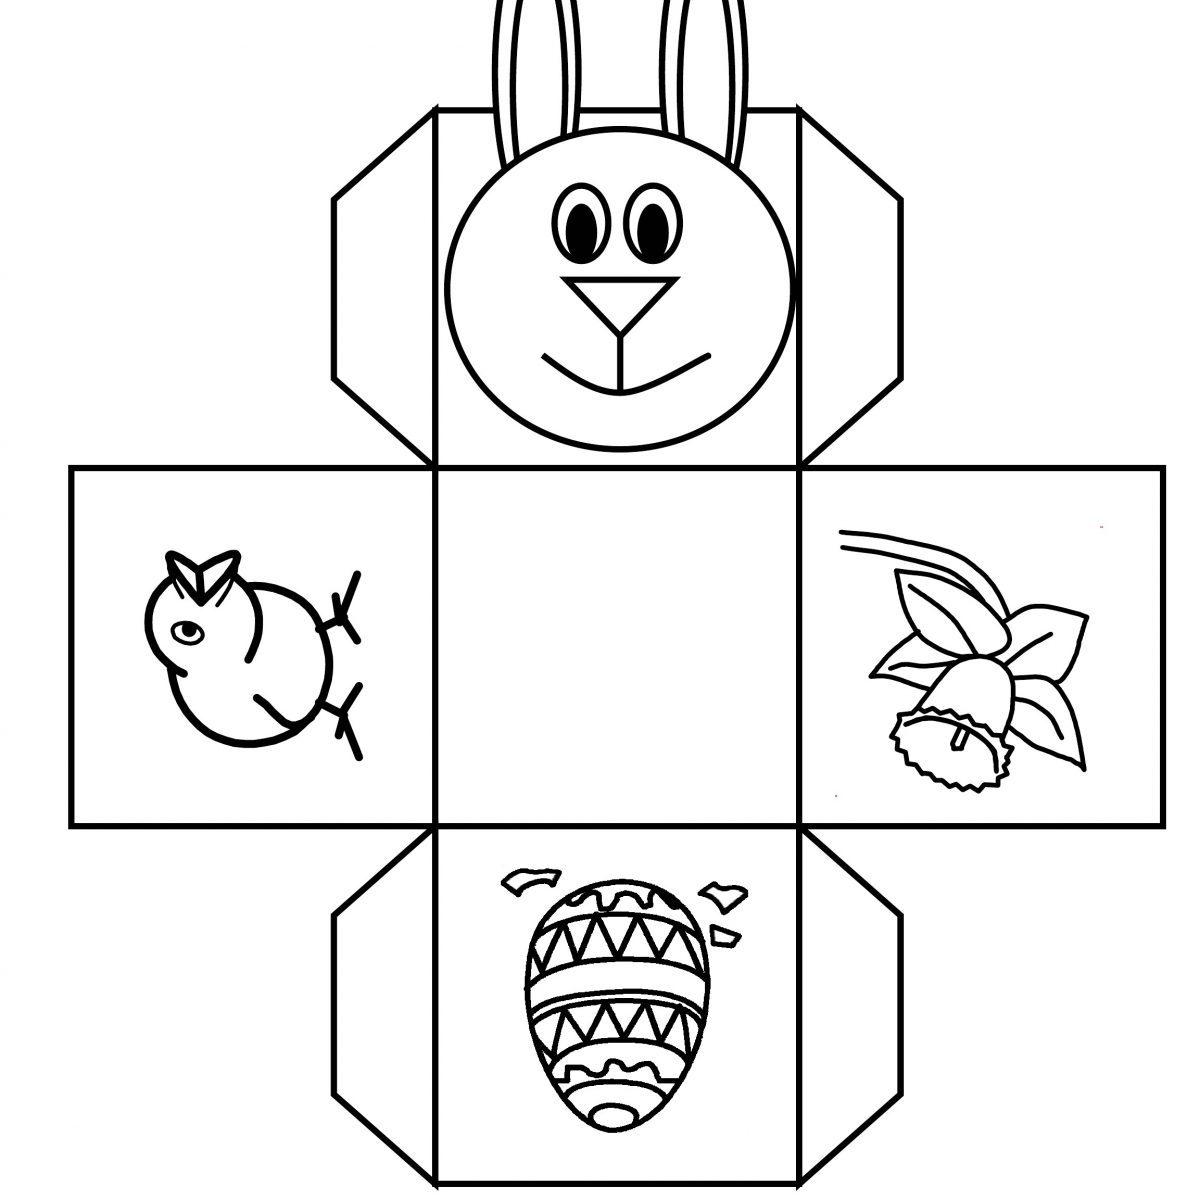 Free Easter Bunny Templates Printables – Hd Easter Images - Free Printable Easter Egg Basket Templates